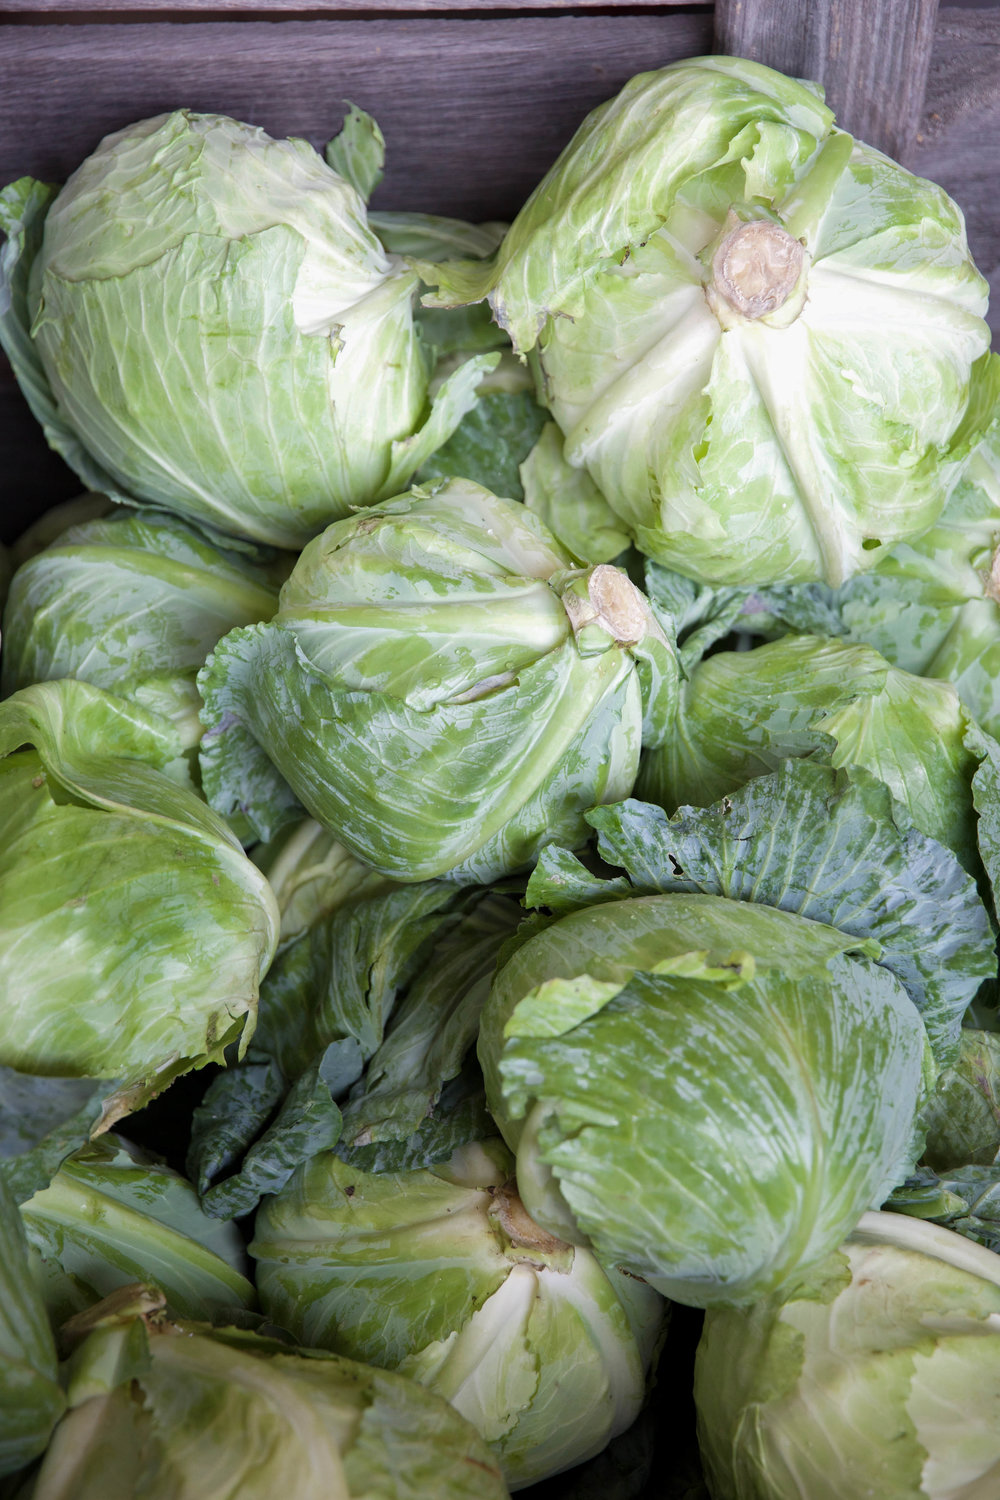 cabbage-fall-foods-laurenschwaiger-lifestyle-blog.jpg